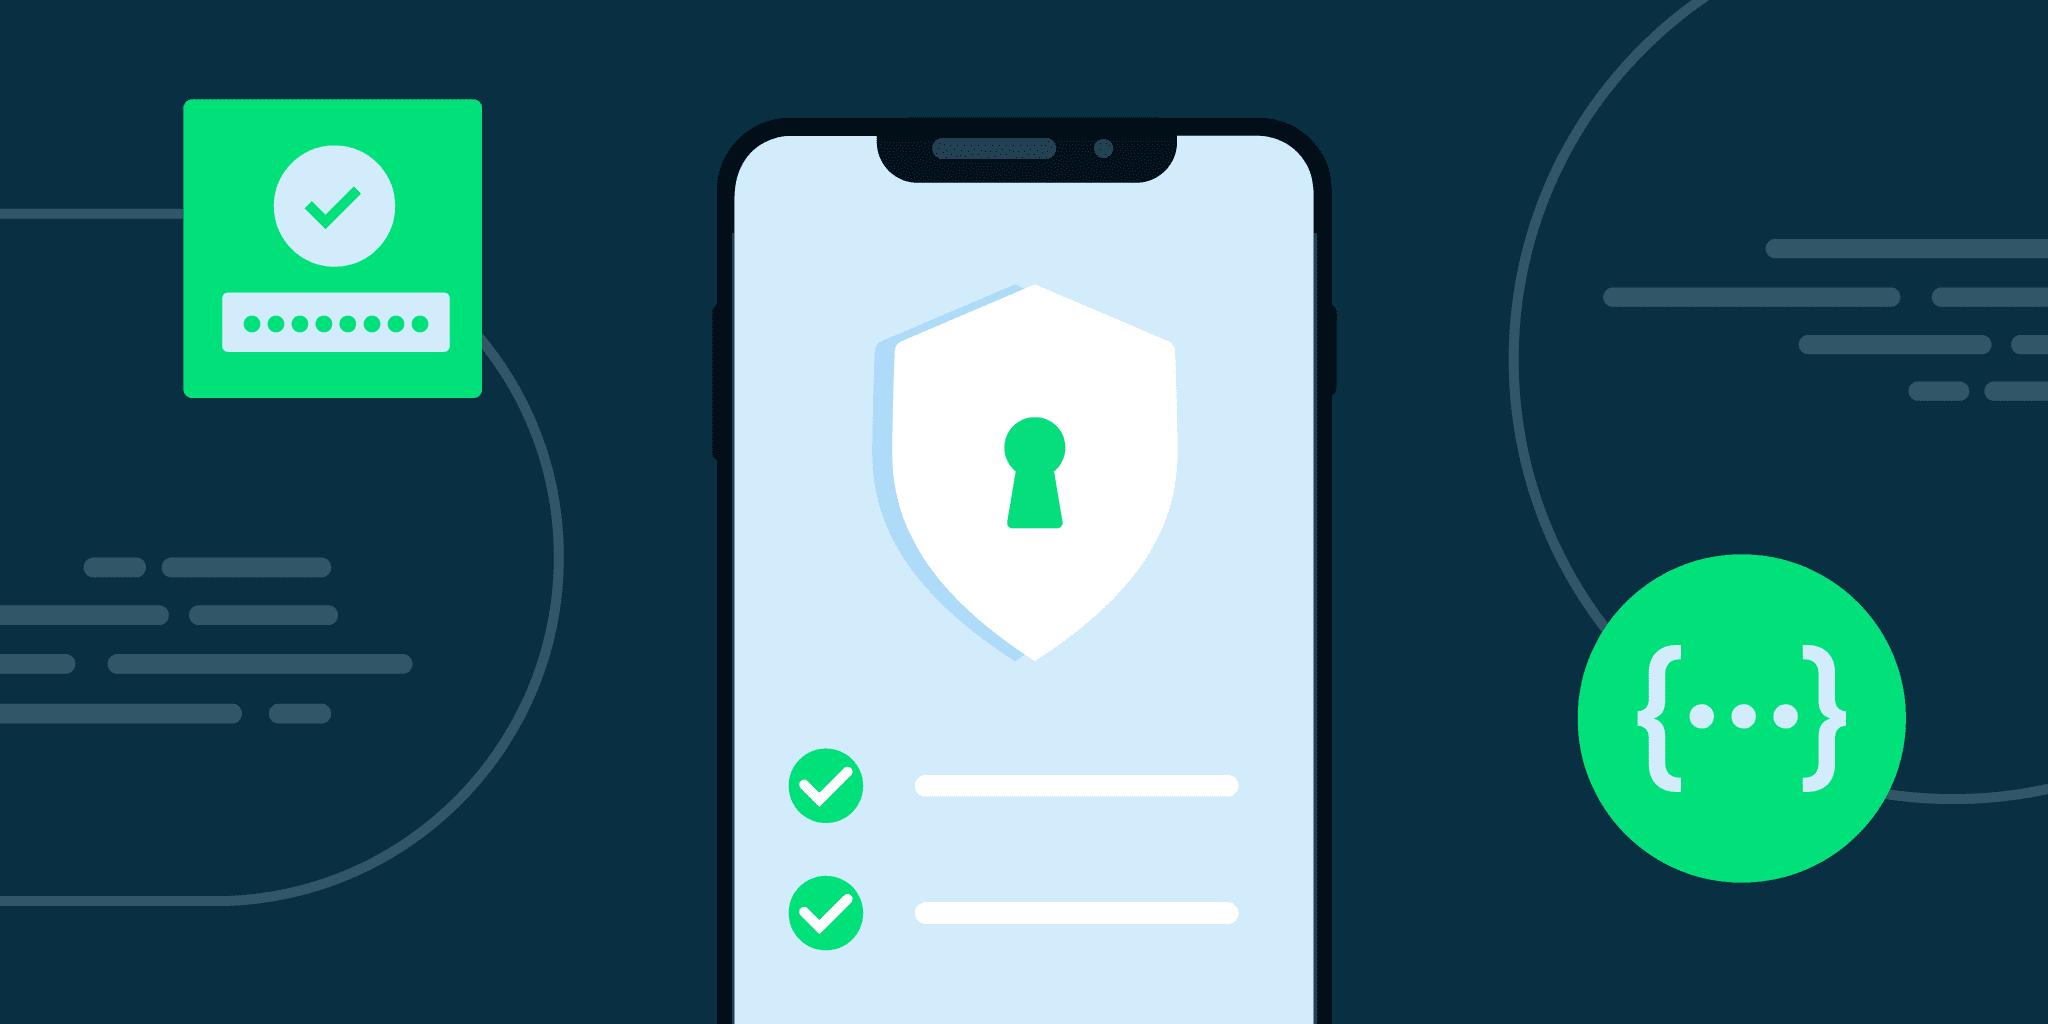 Illustration of a phone with a security symbol